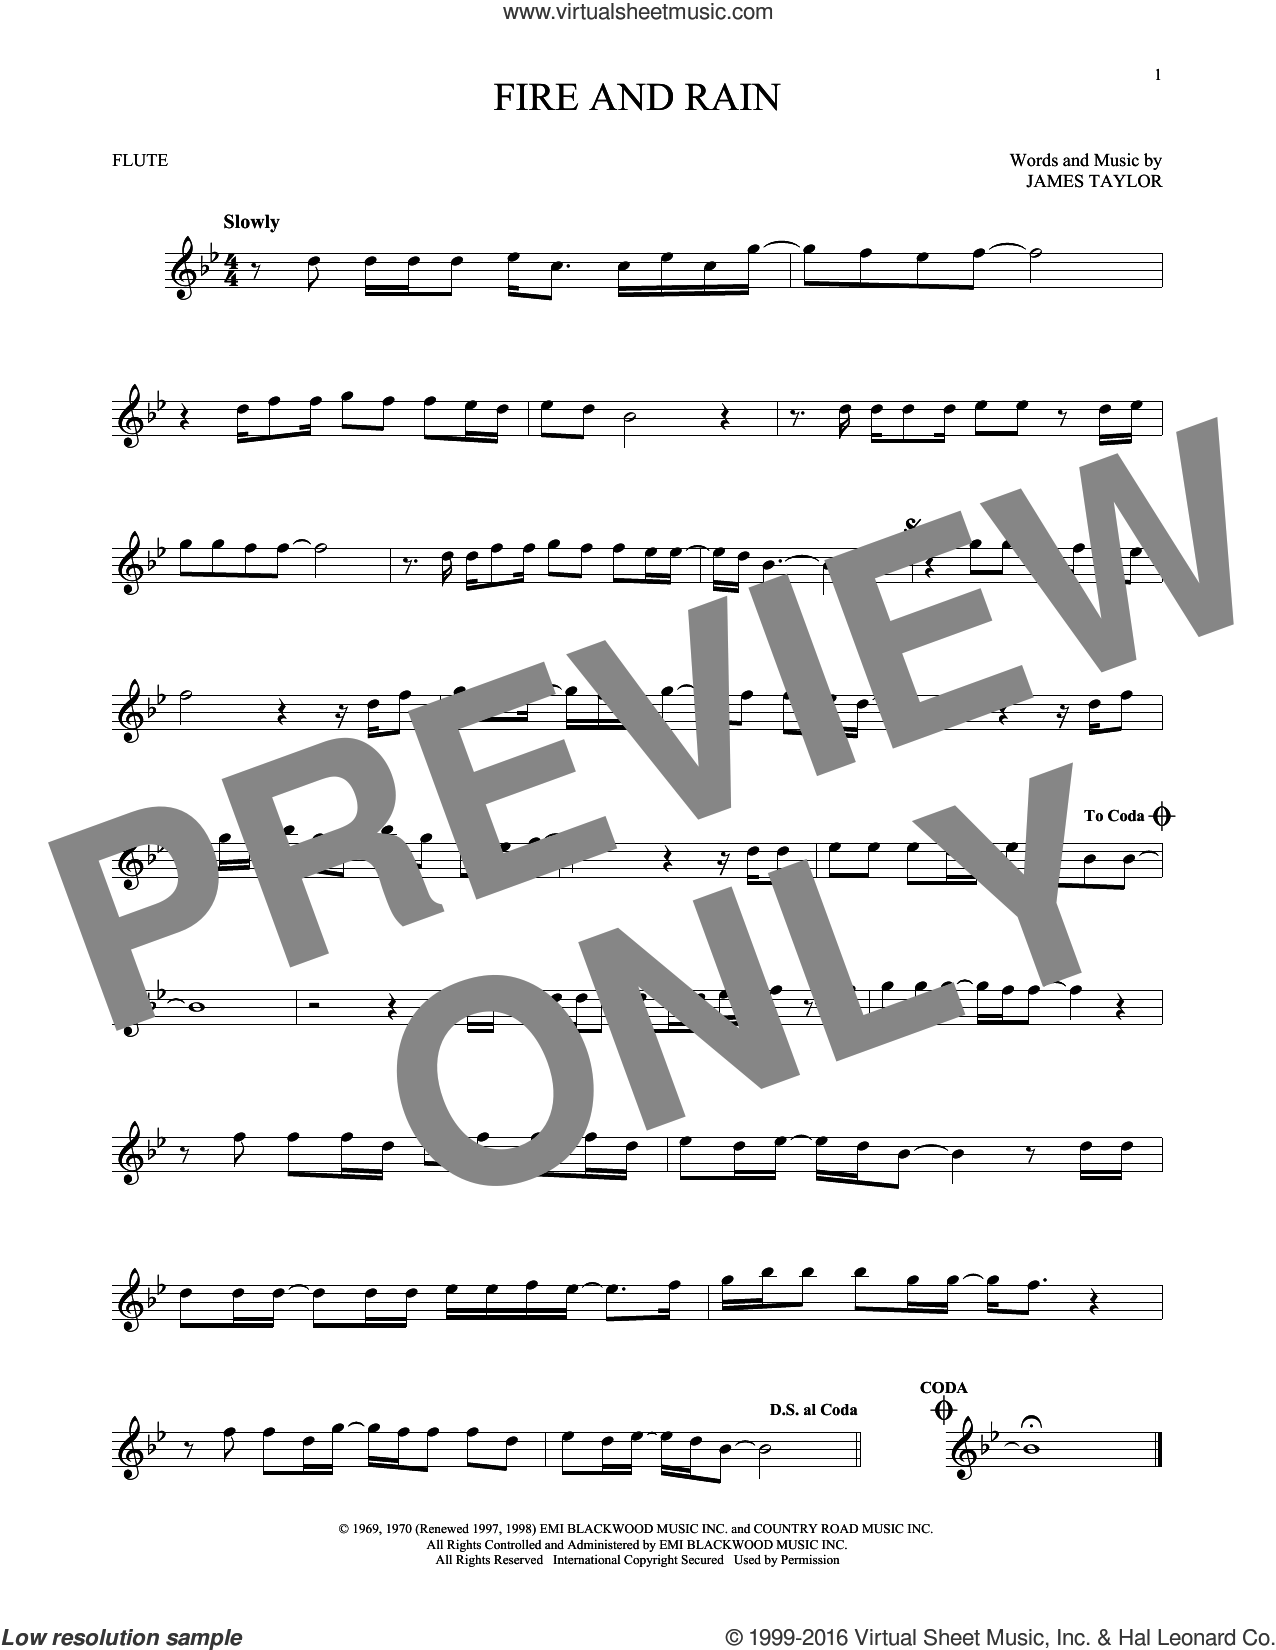 Fire And Rain sheet music for flute solo by James Taylor